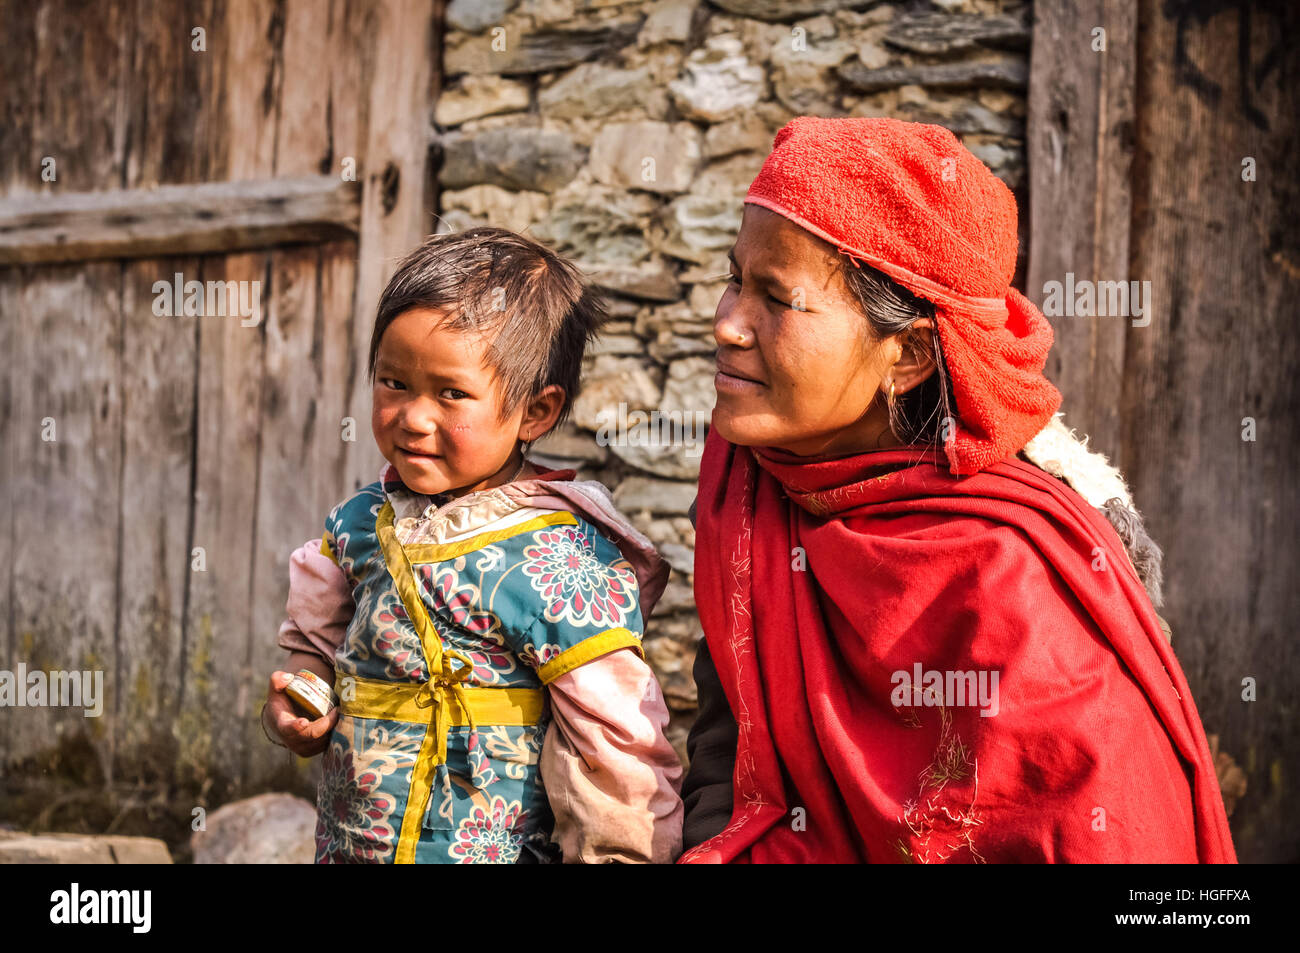 Beni, Nepal - circa May 2012: Mother in red scarf and headcloth kneels near her small daughter with brown hair and - Stock Image